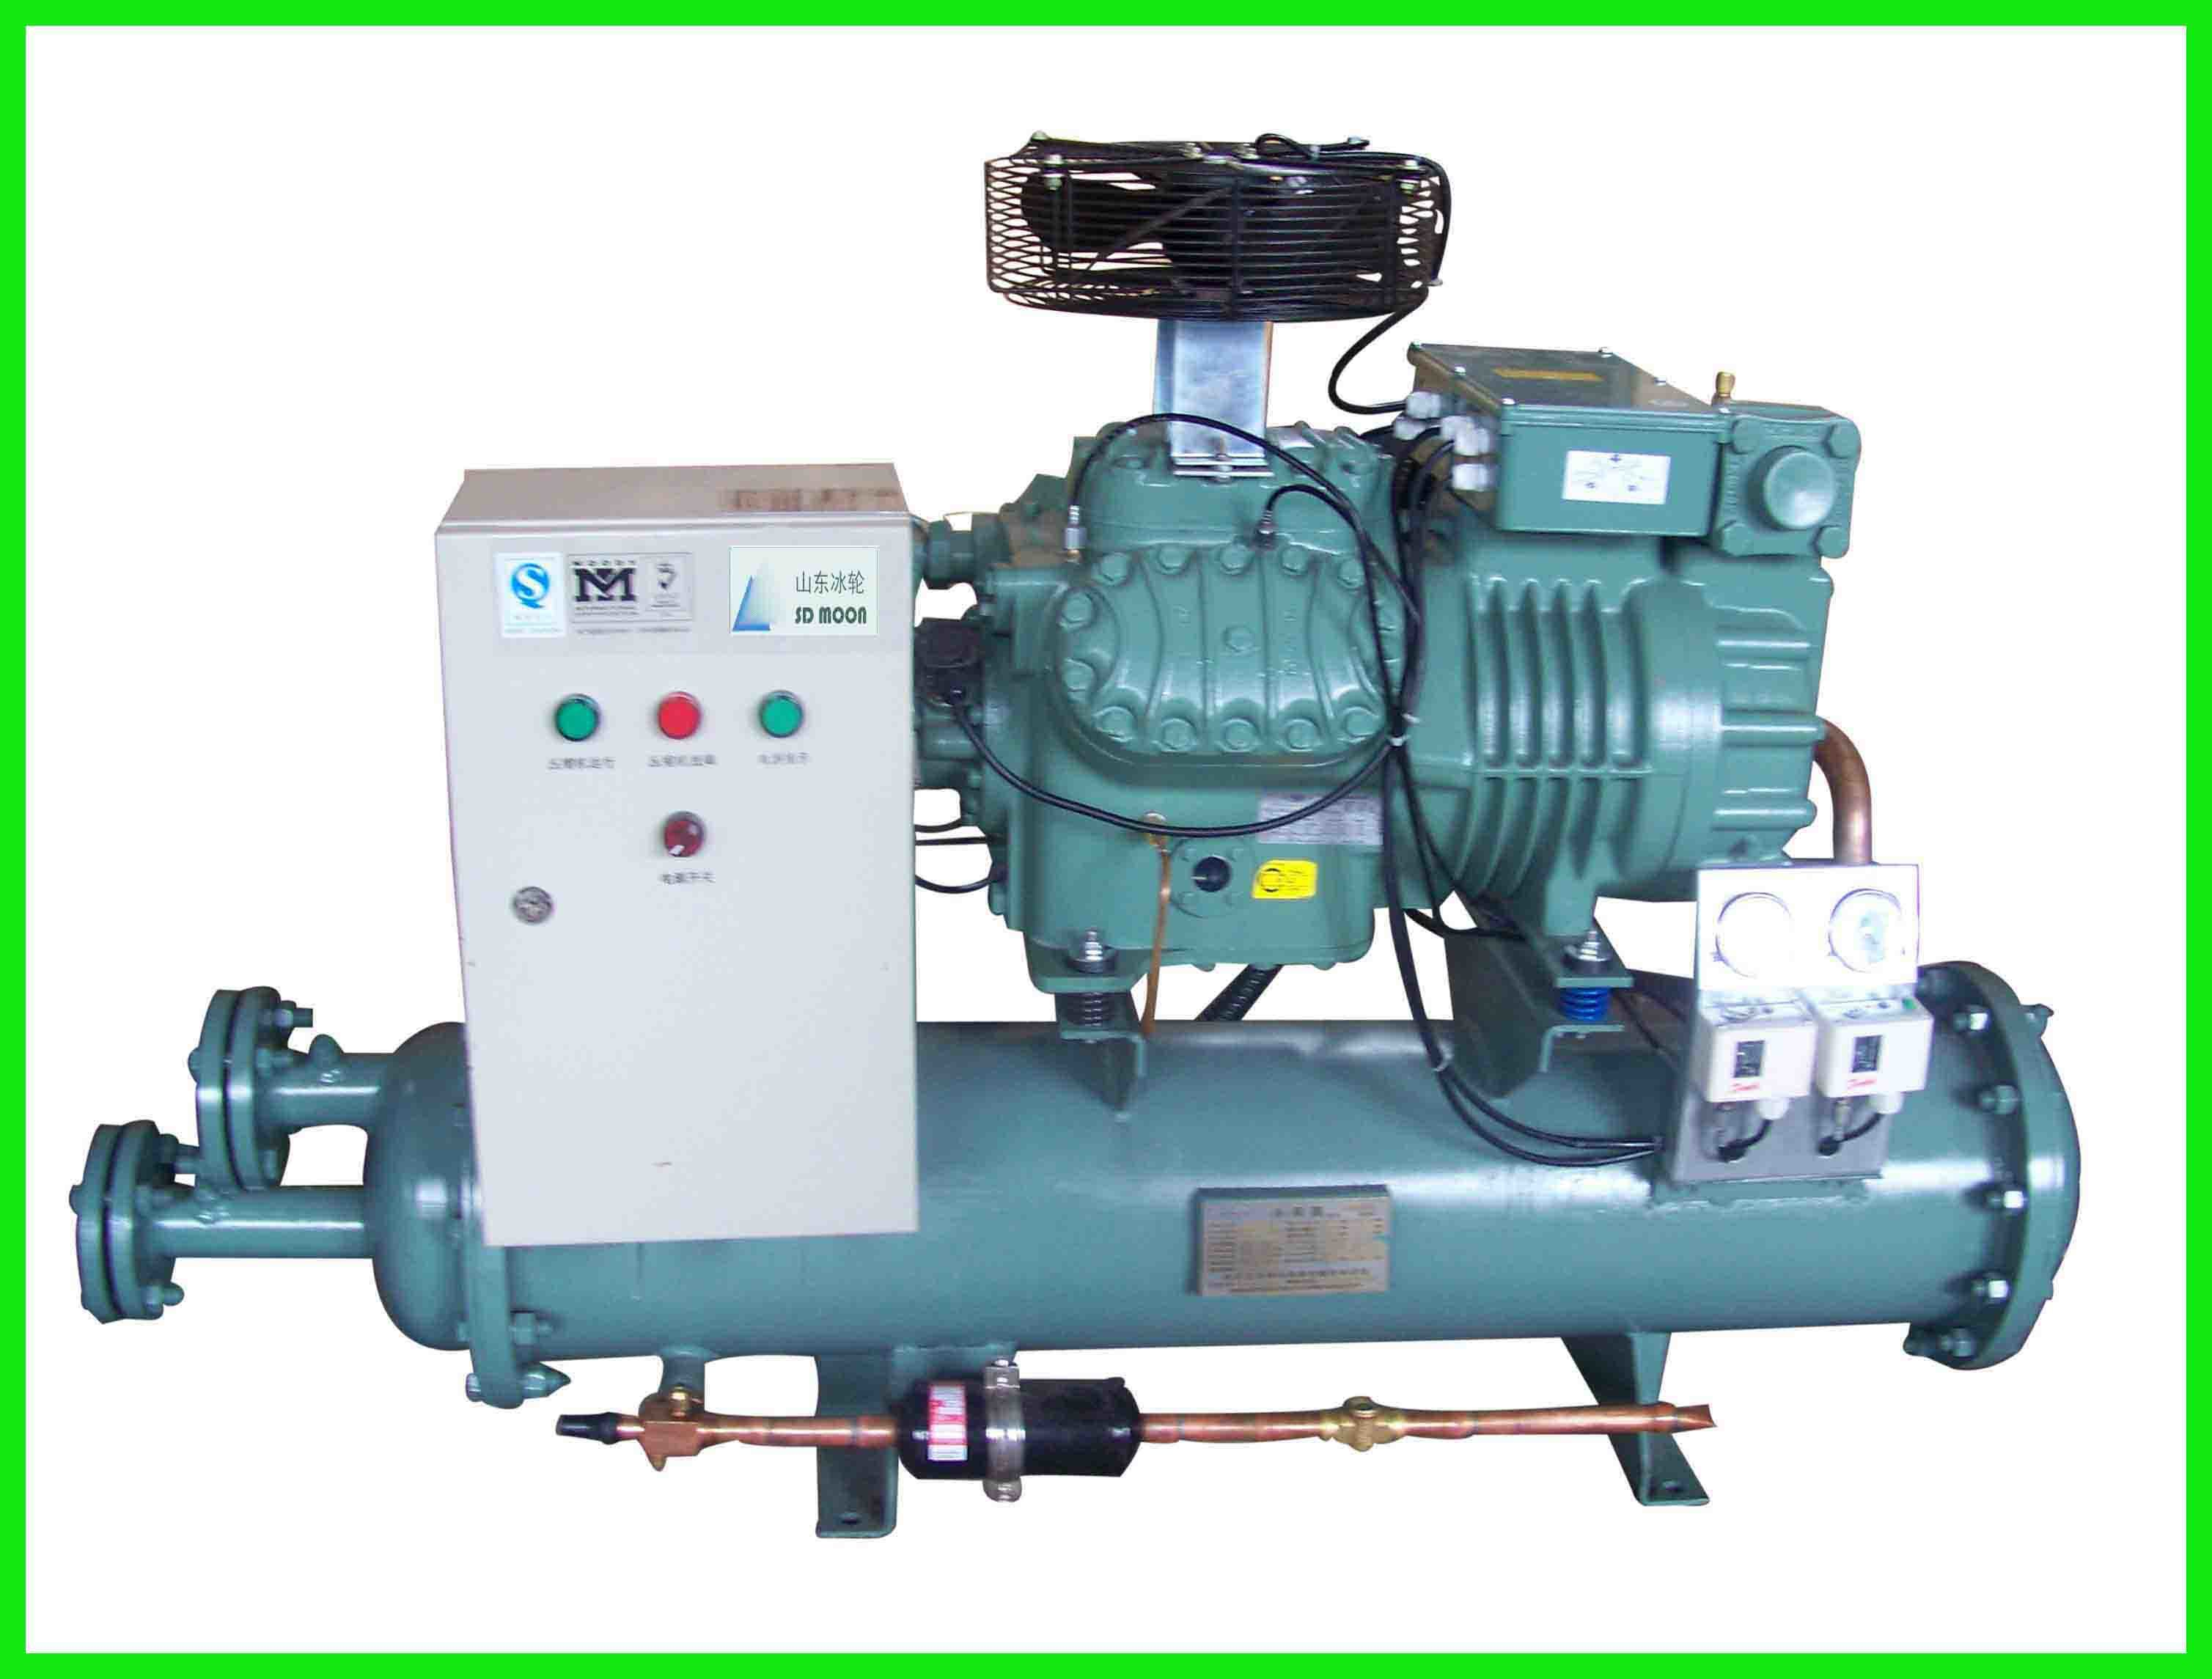 Water Cooled Chiller (SCBL 25W) – Water Cooled Chiller (SCBL 25W  #0AC308